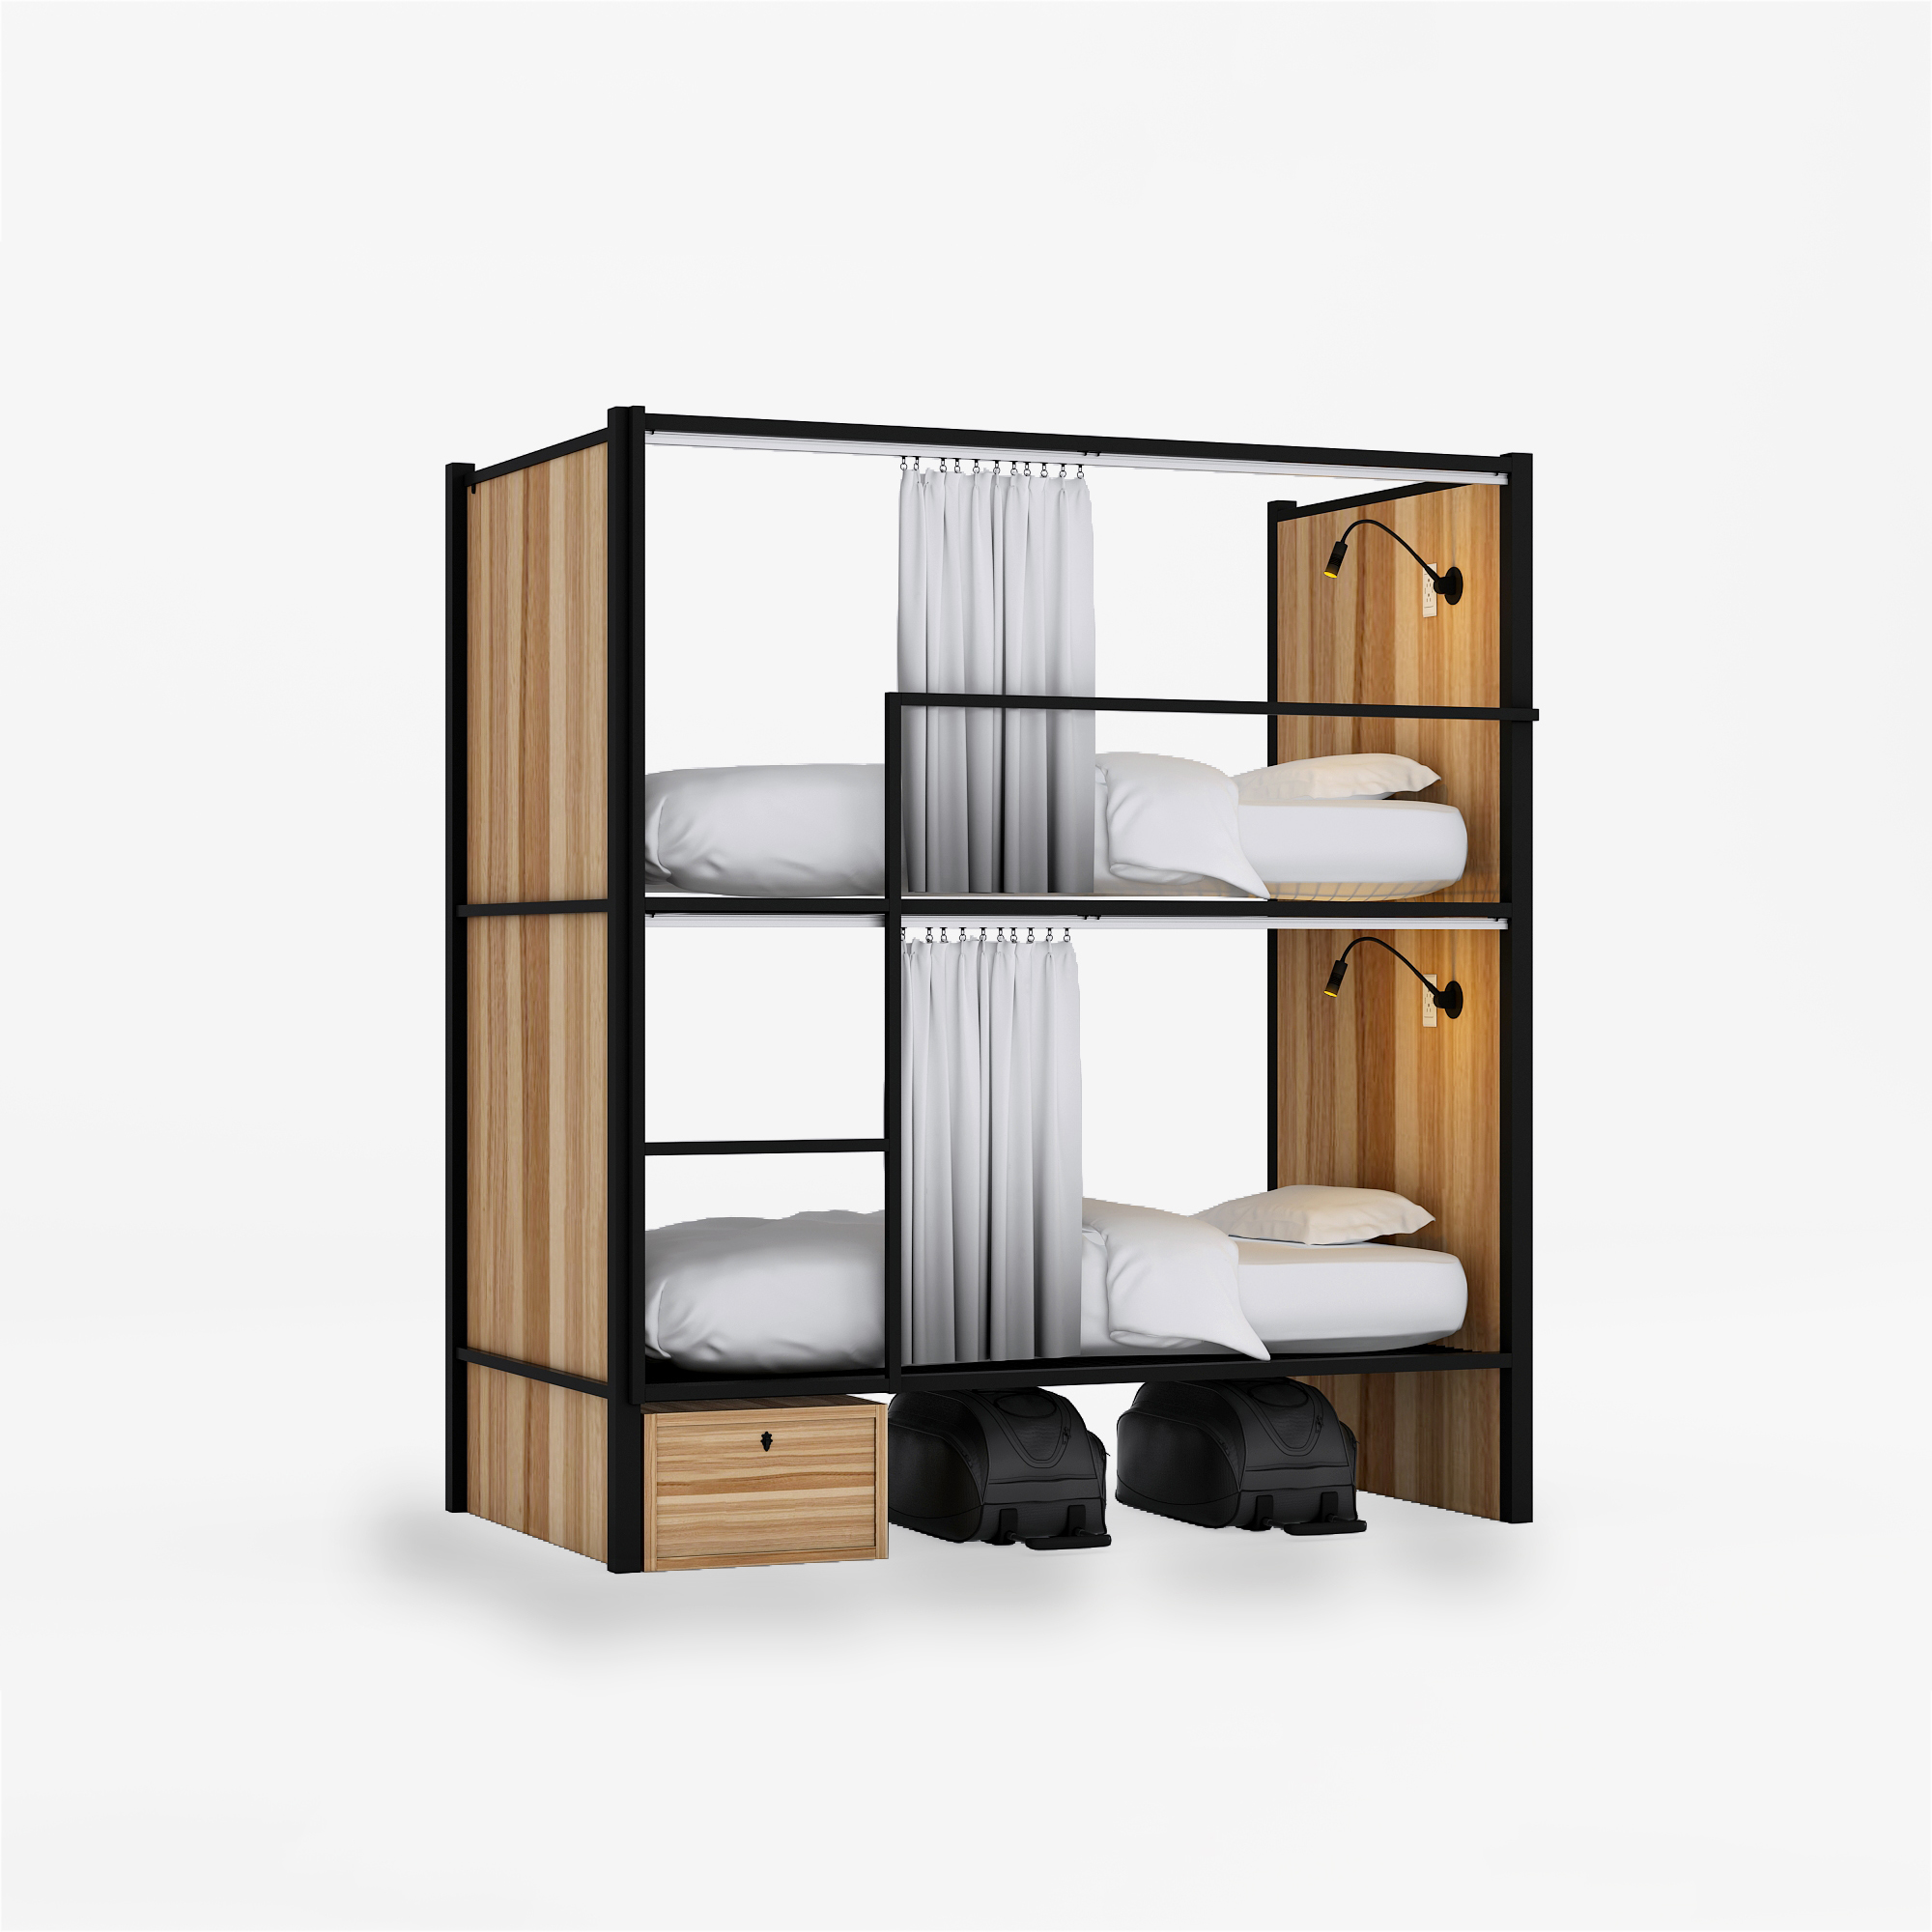 Wood capsule Bunk <strong>Bed</strong> for Hostels /School Students Dormitory Loft <strong>Bed</strong> Frame/capsule hotel <strong>bed</strong>